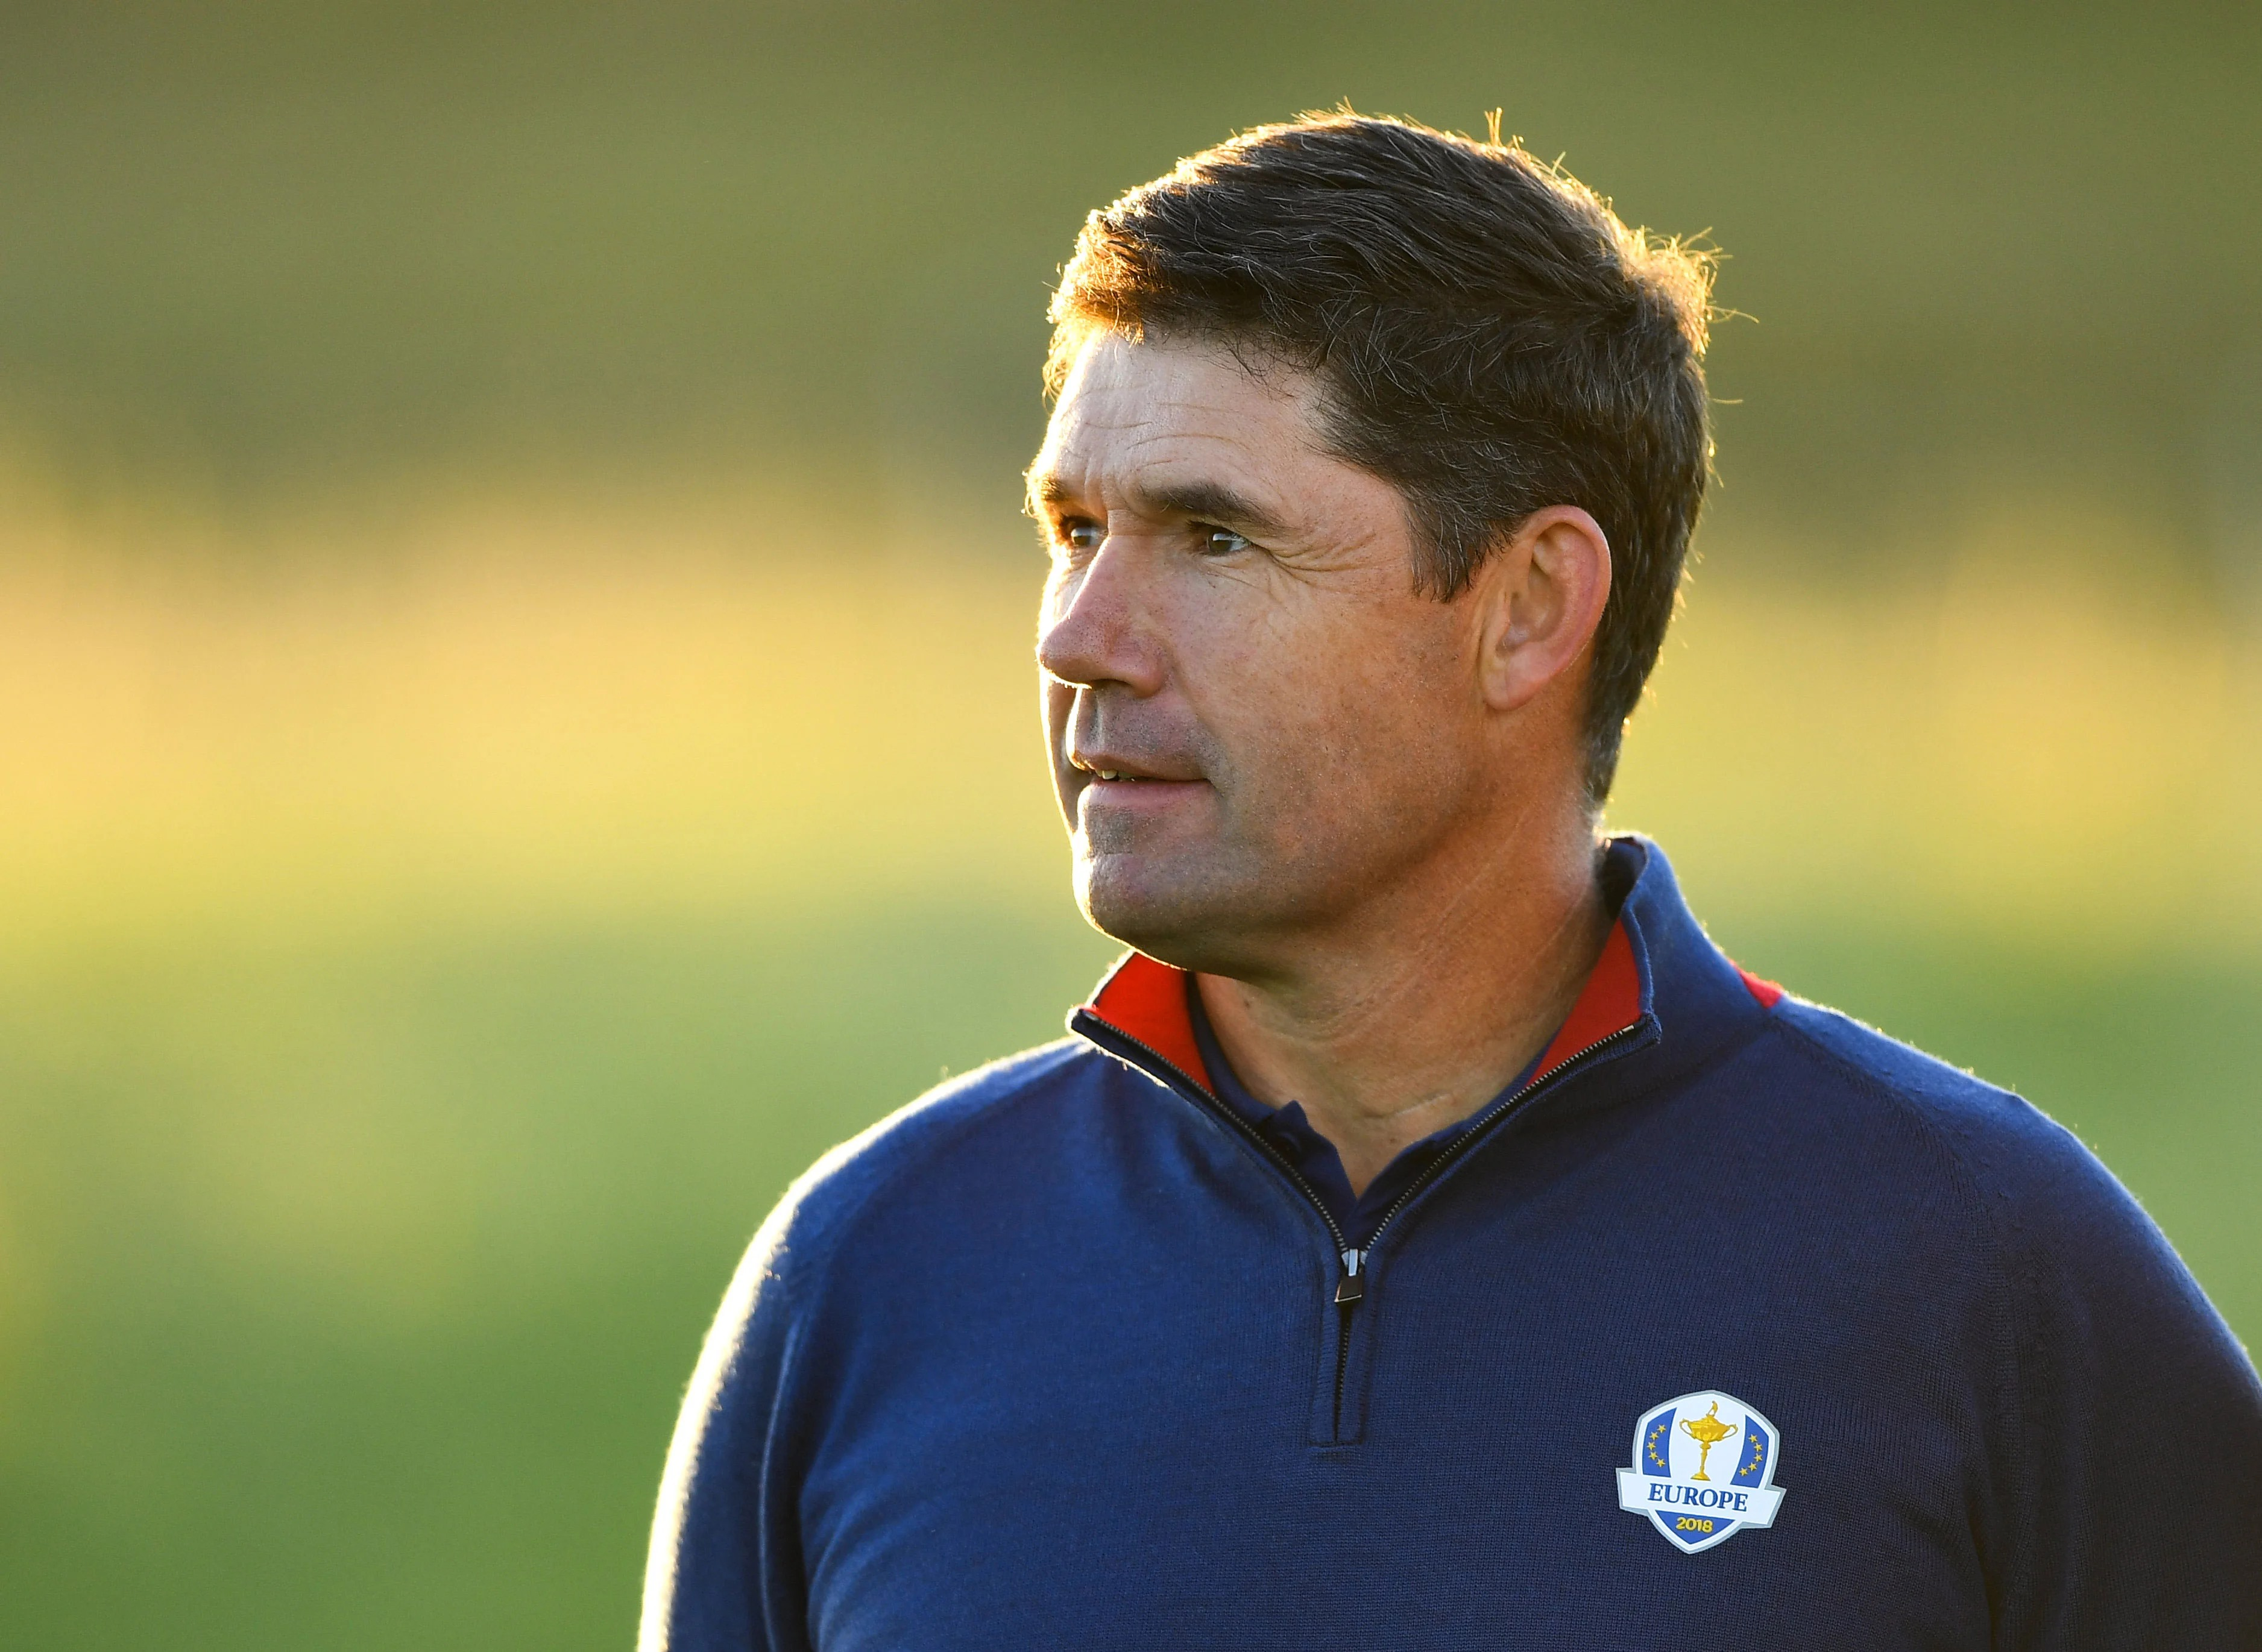 Padraig Harrington capitán Europea Ryder